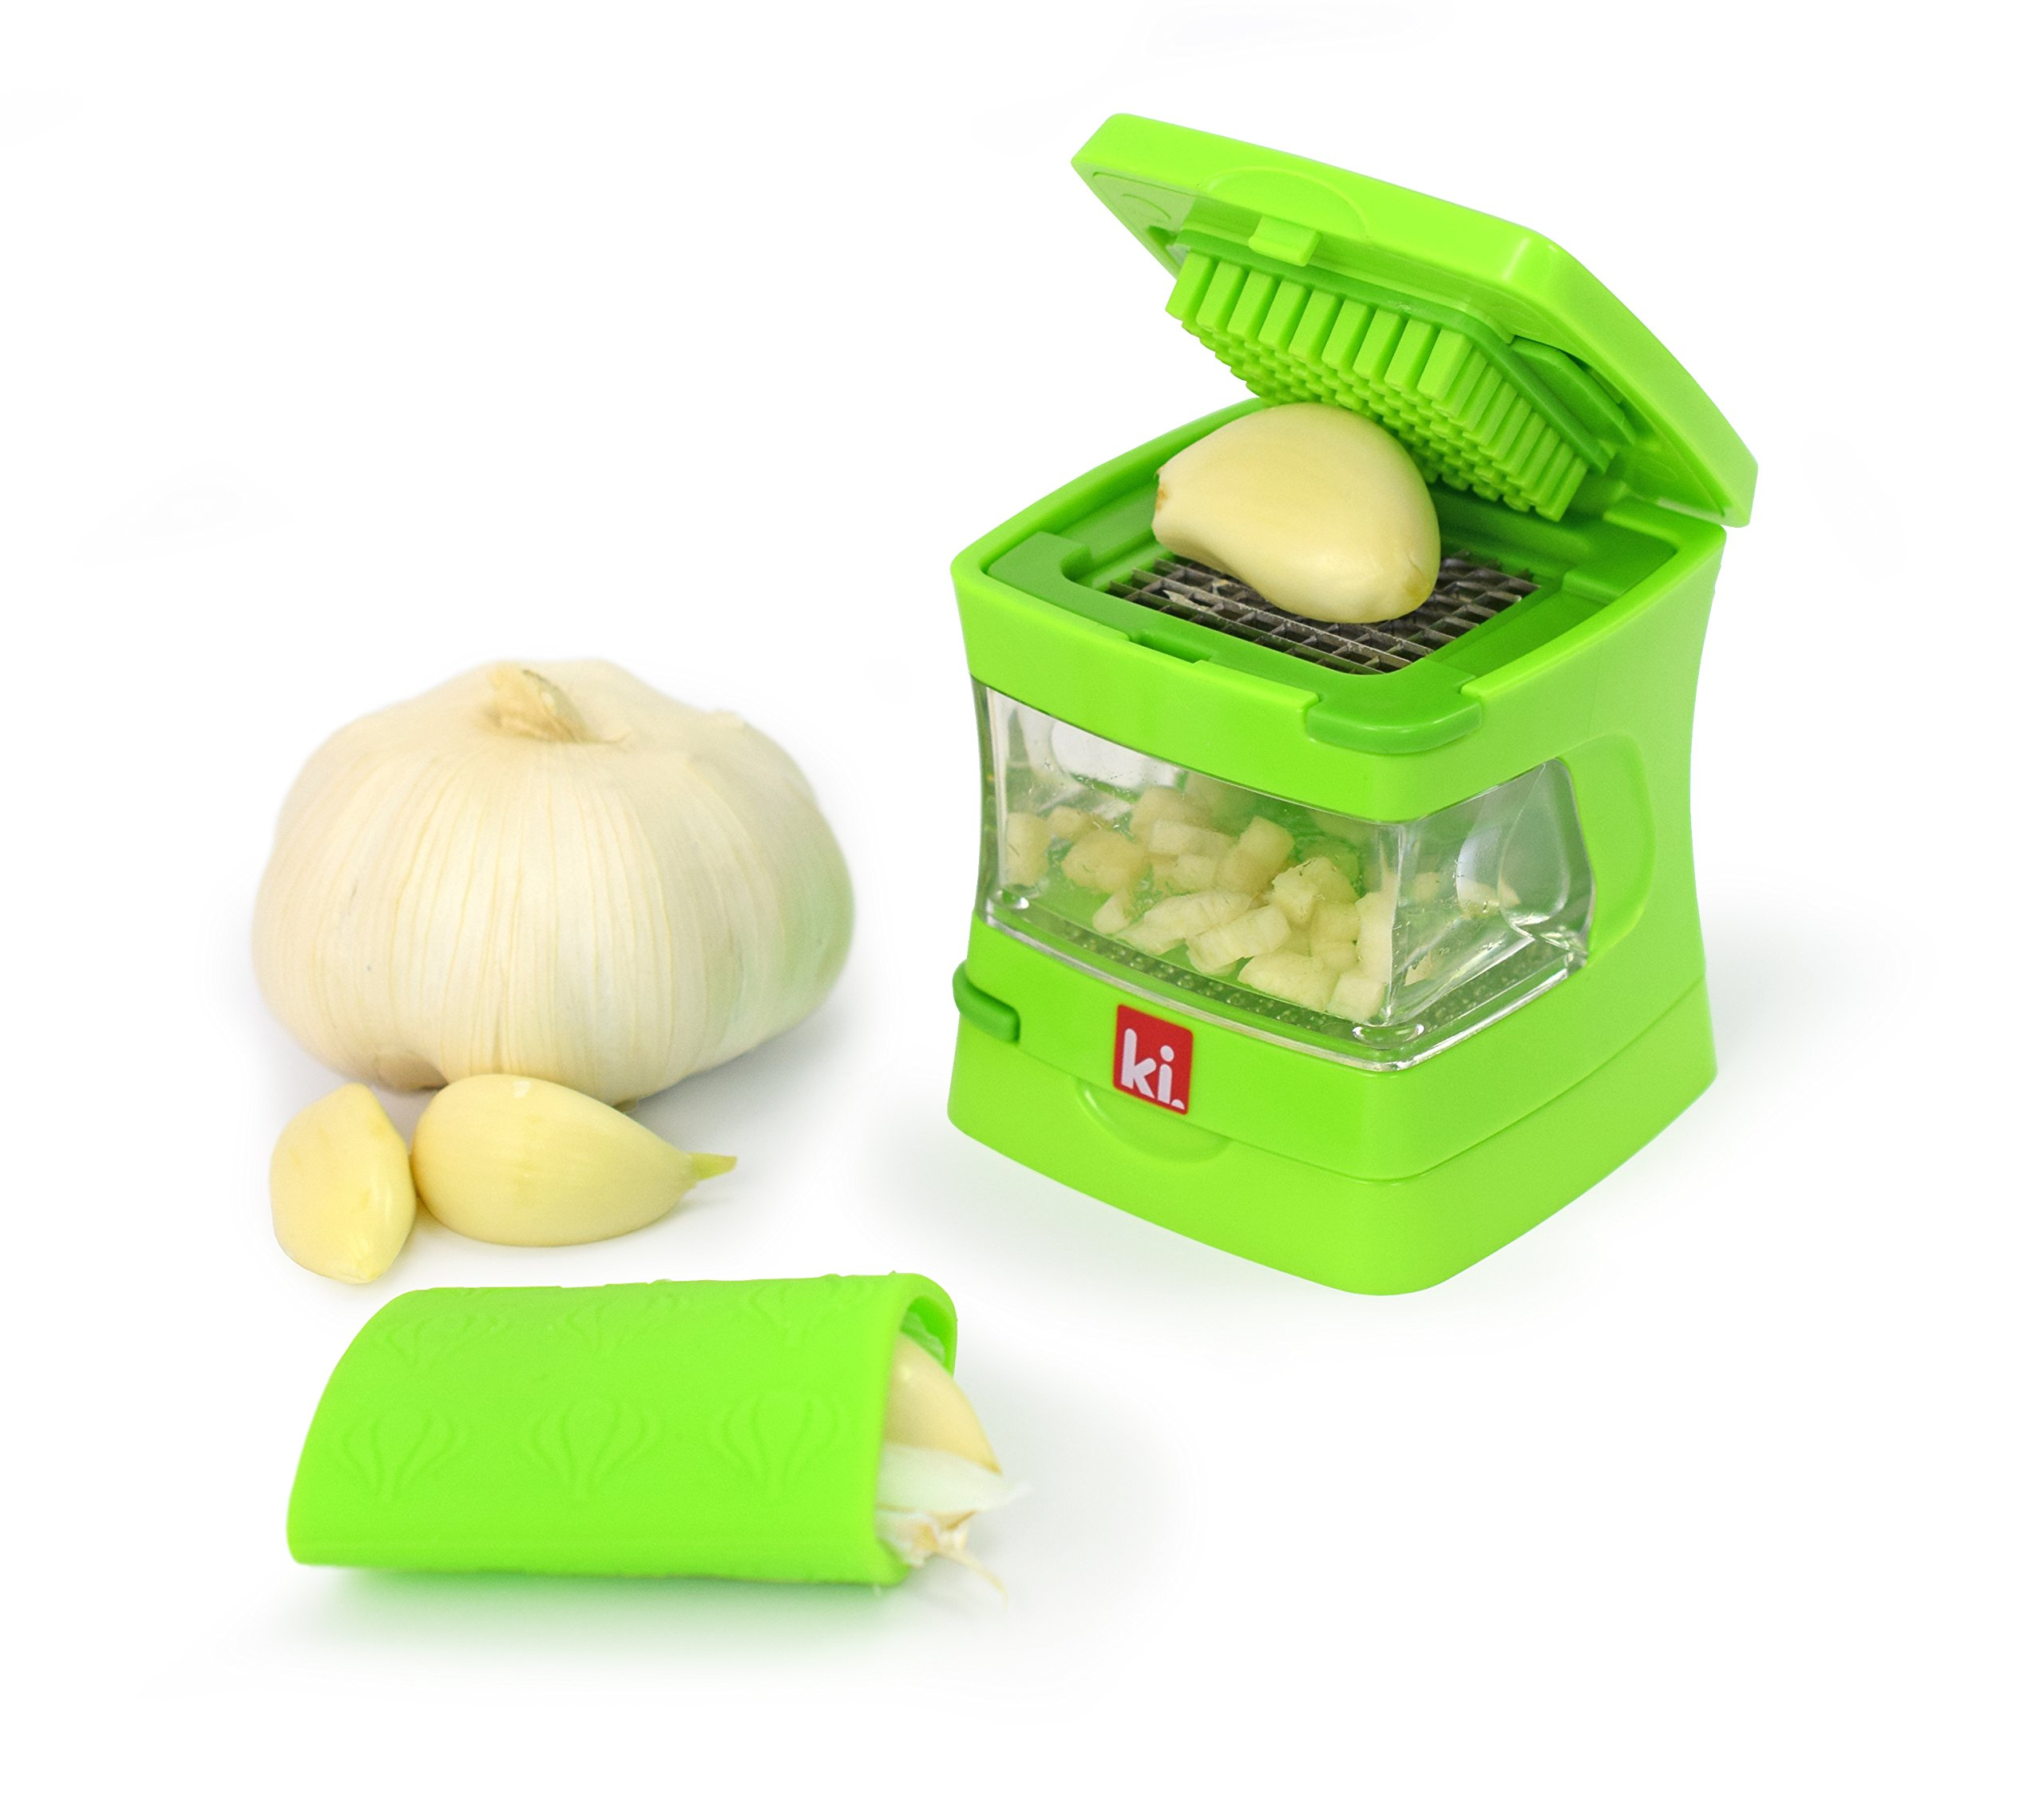 Kitchen Innovations Garlic-A-Peel Garlic Press, Crusher, Mincer, and Storage Container - Includes Silicone Garlic Peeler - Easy to Clean - Stainless Steel Blades - (Green) by Kitchen Innovations